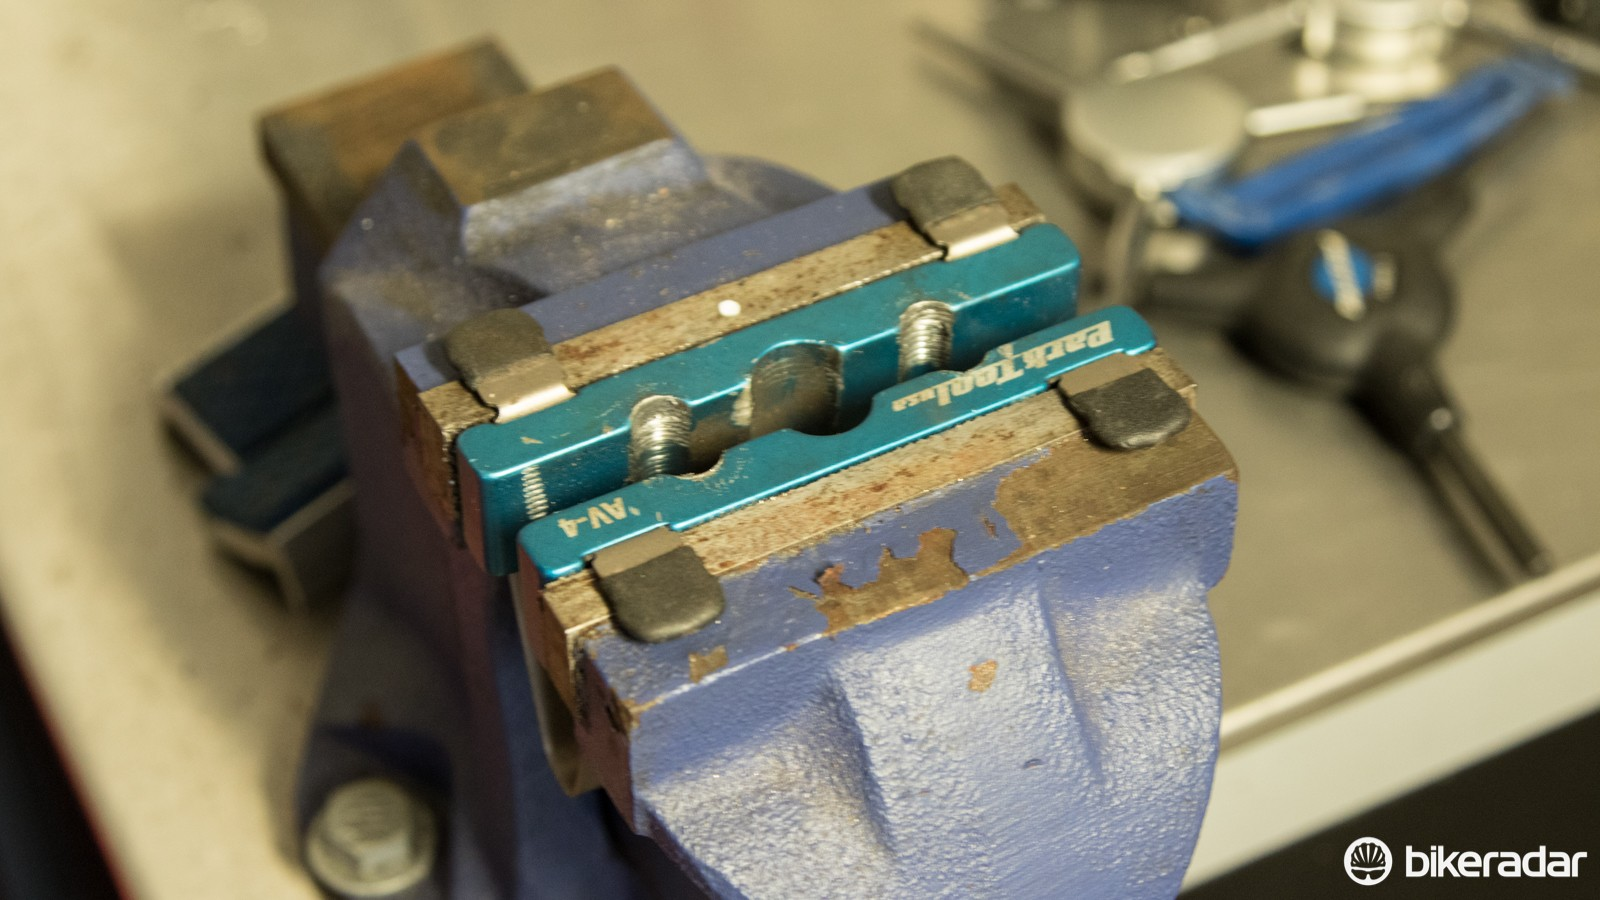 Axle soft-jaws make a workshop vice 'cycle specific'